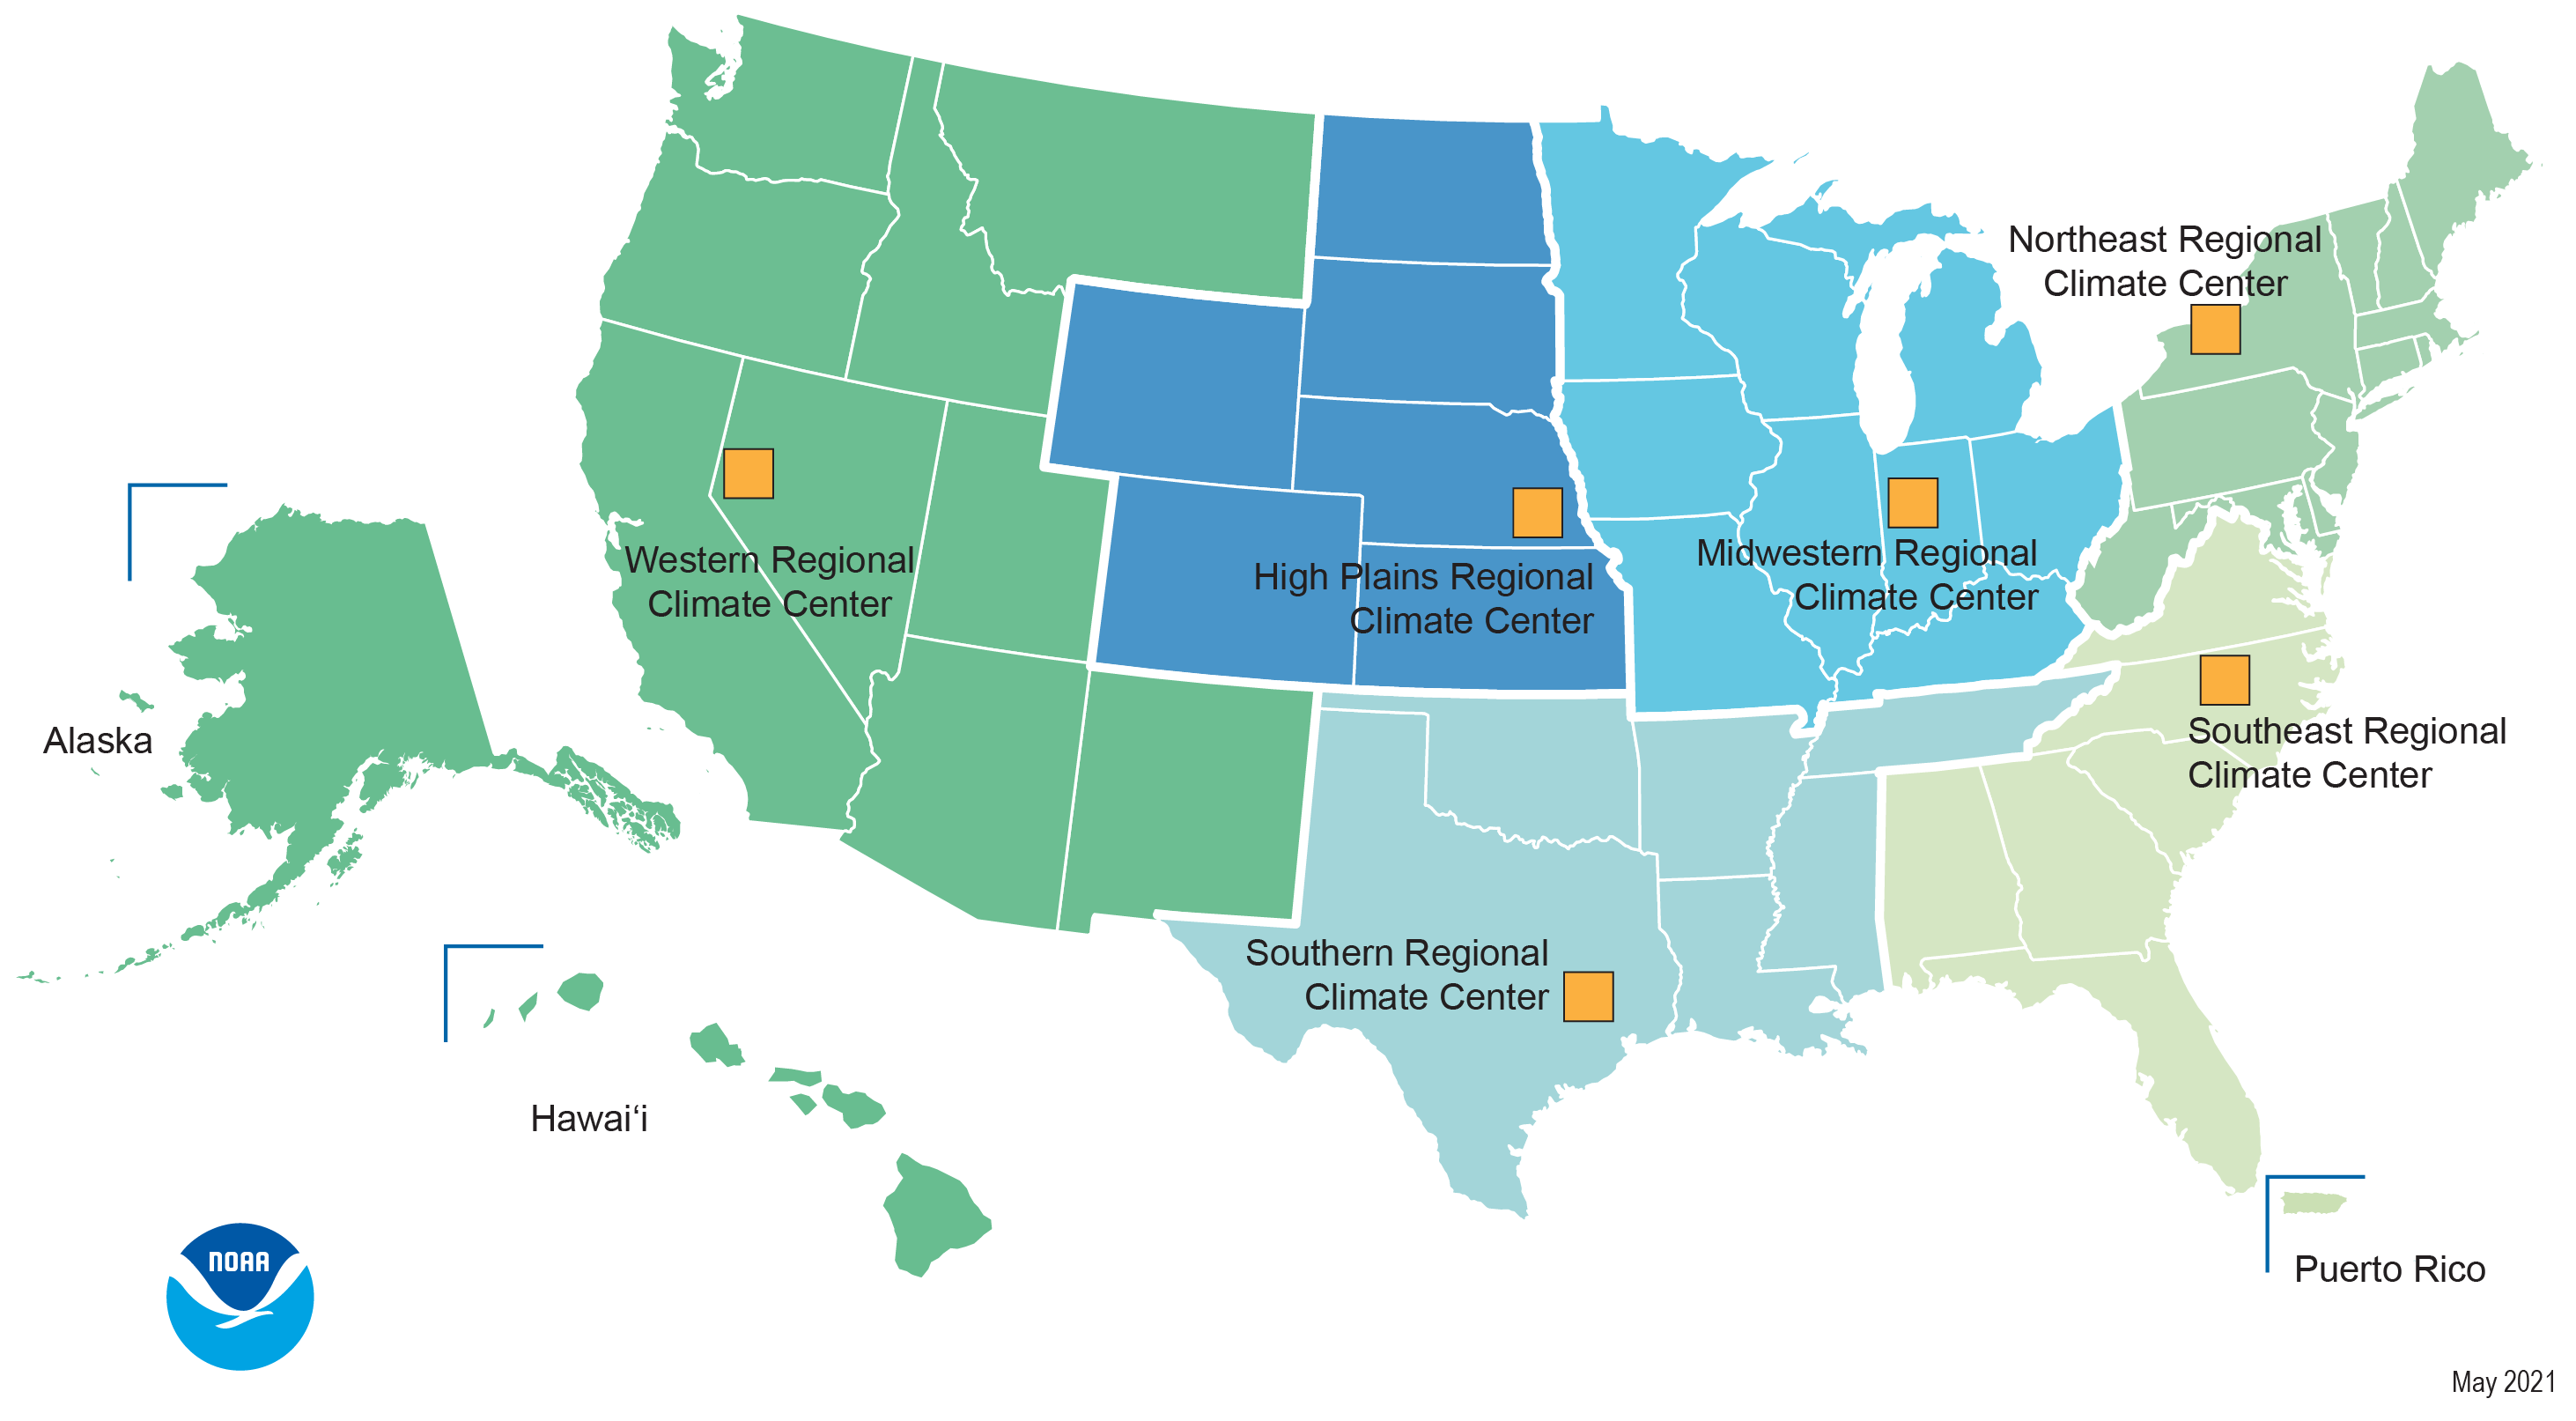 Map of Regional Climate Centers